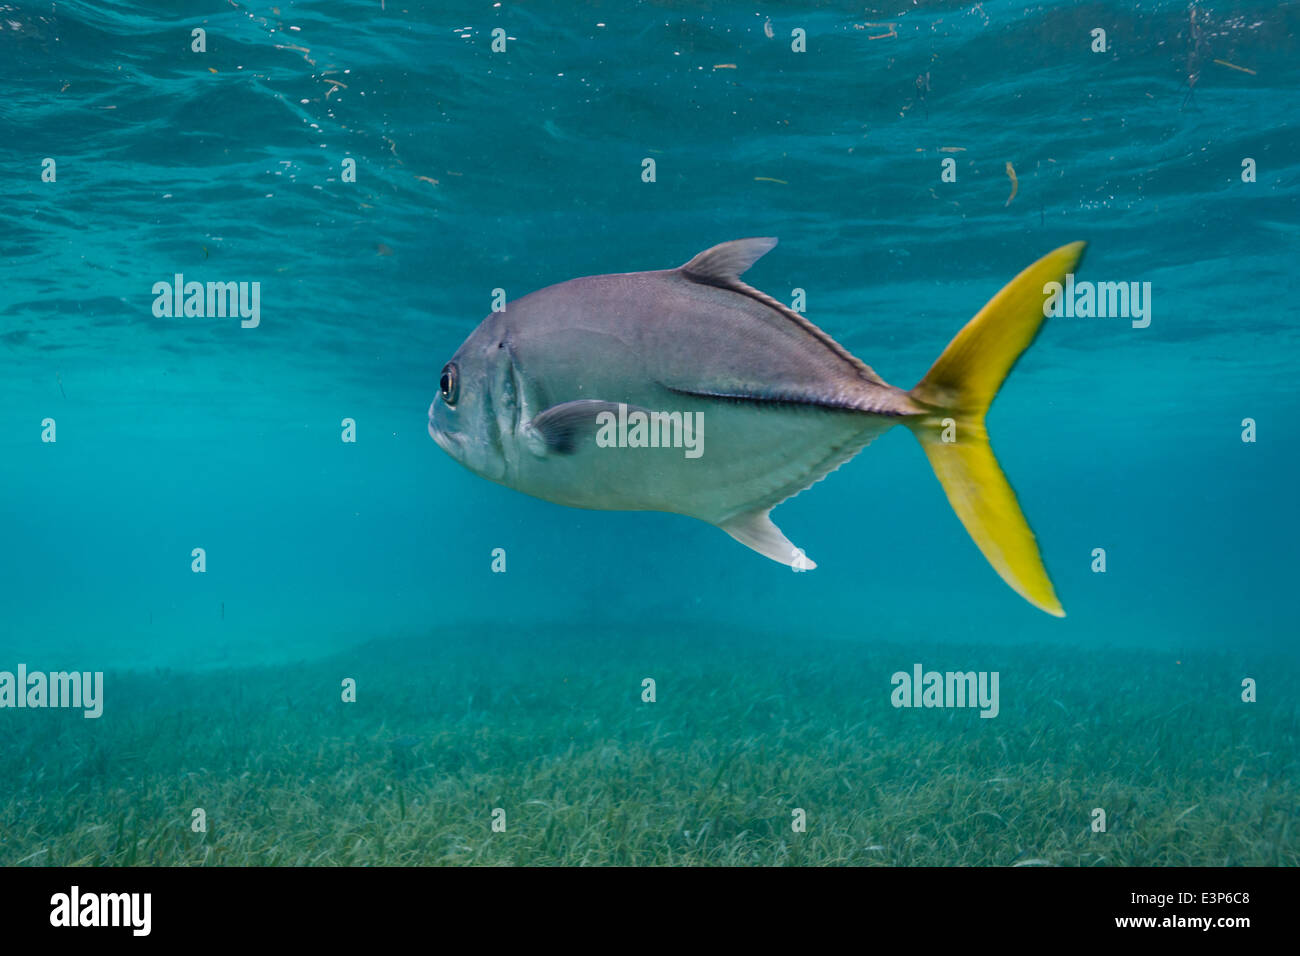 Horse swimming stock photos horse swimming stock images for Yellow tail fish